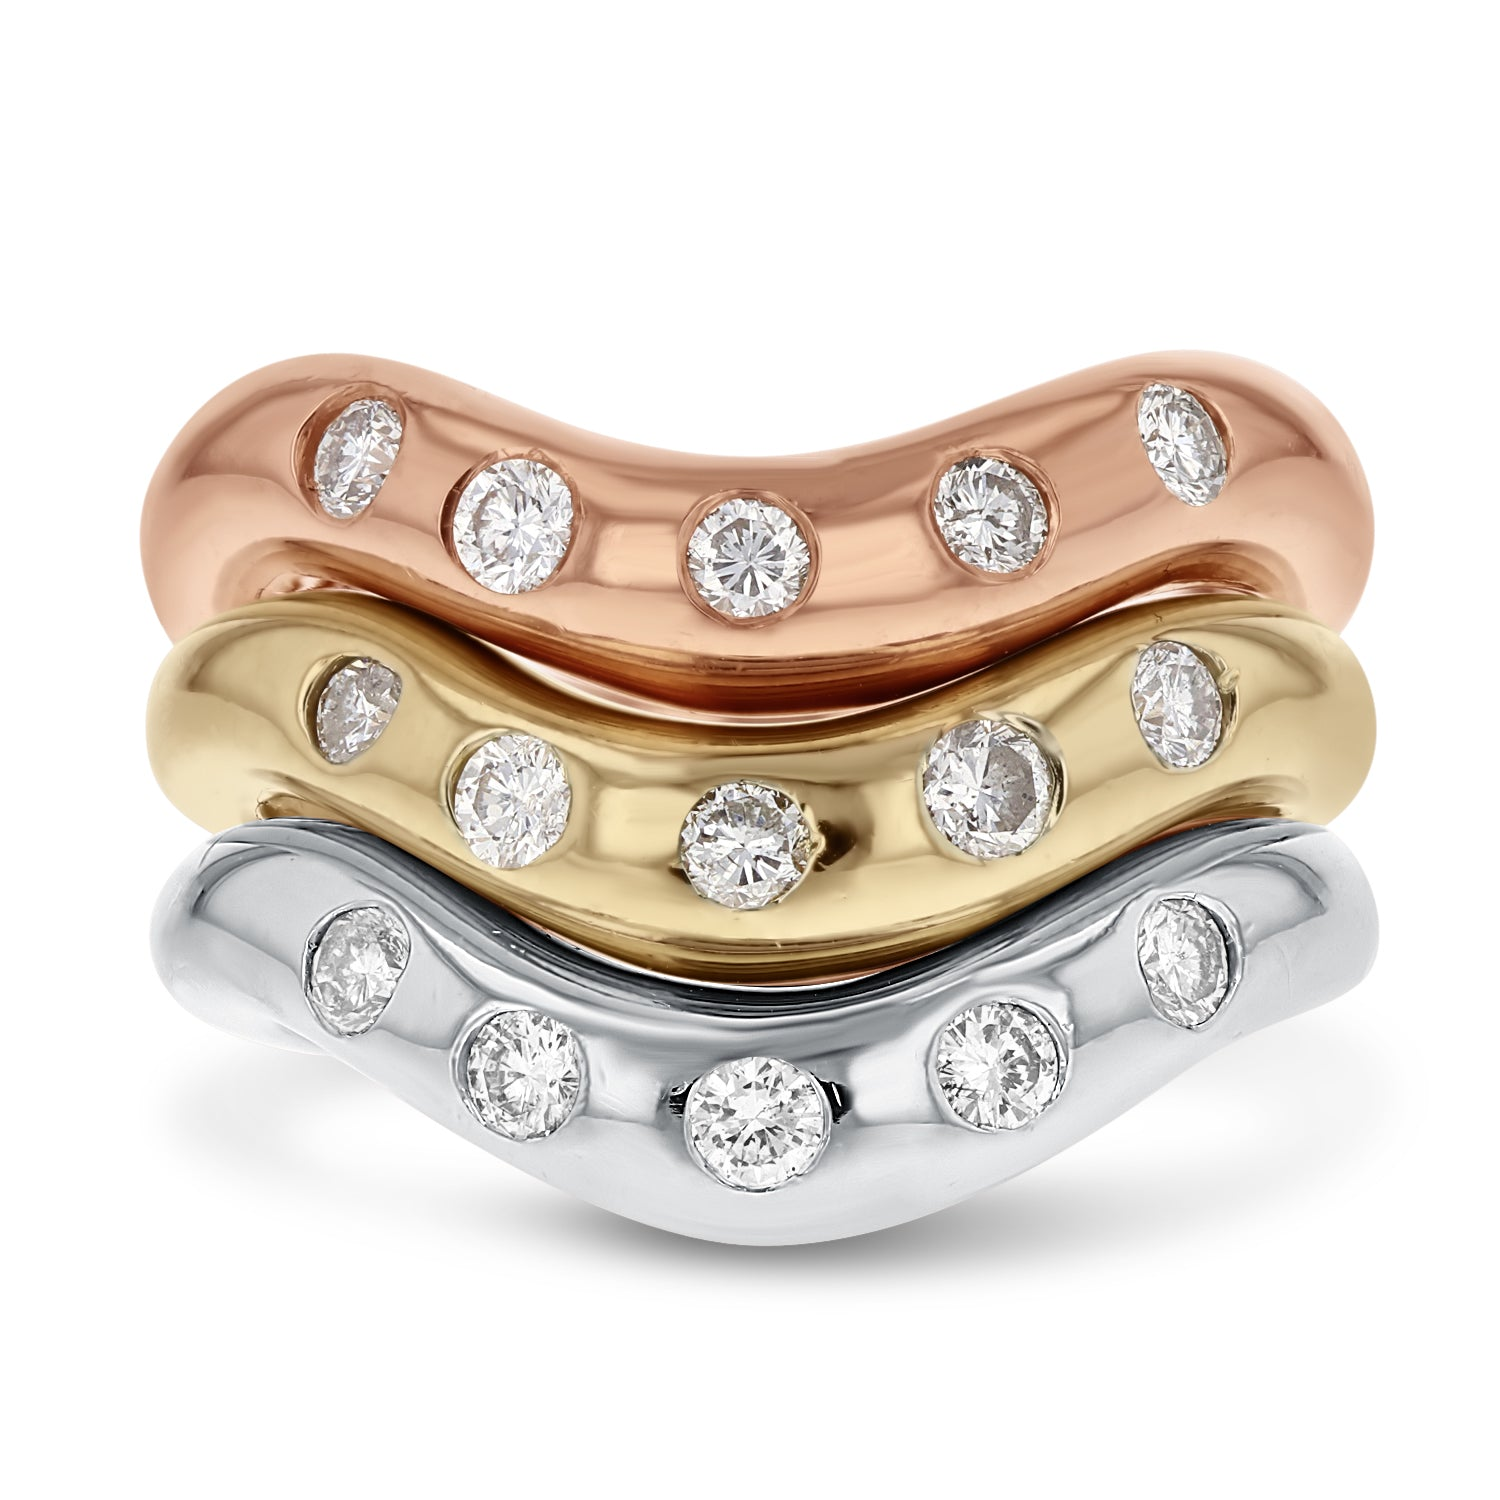 18K WHITE YELLOW AND ROSE GOLD Statement Ring, 0.75 Carats